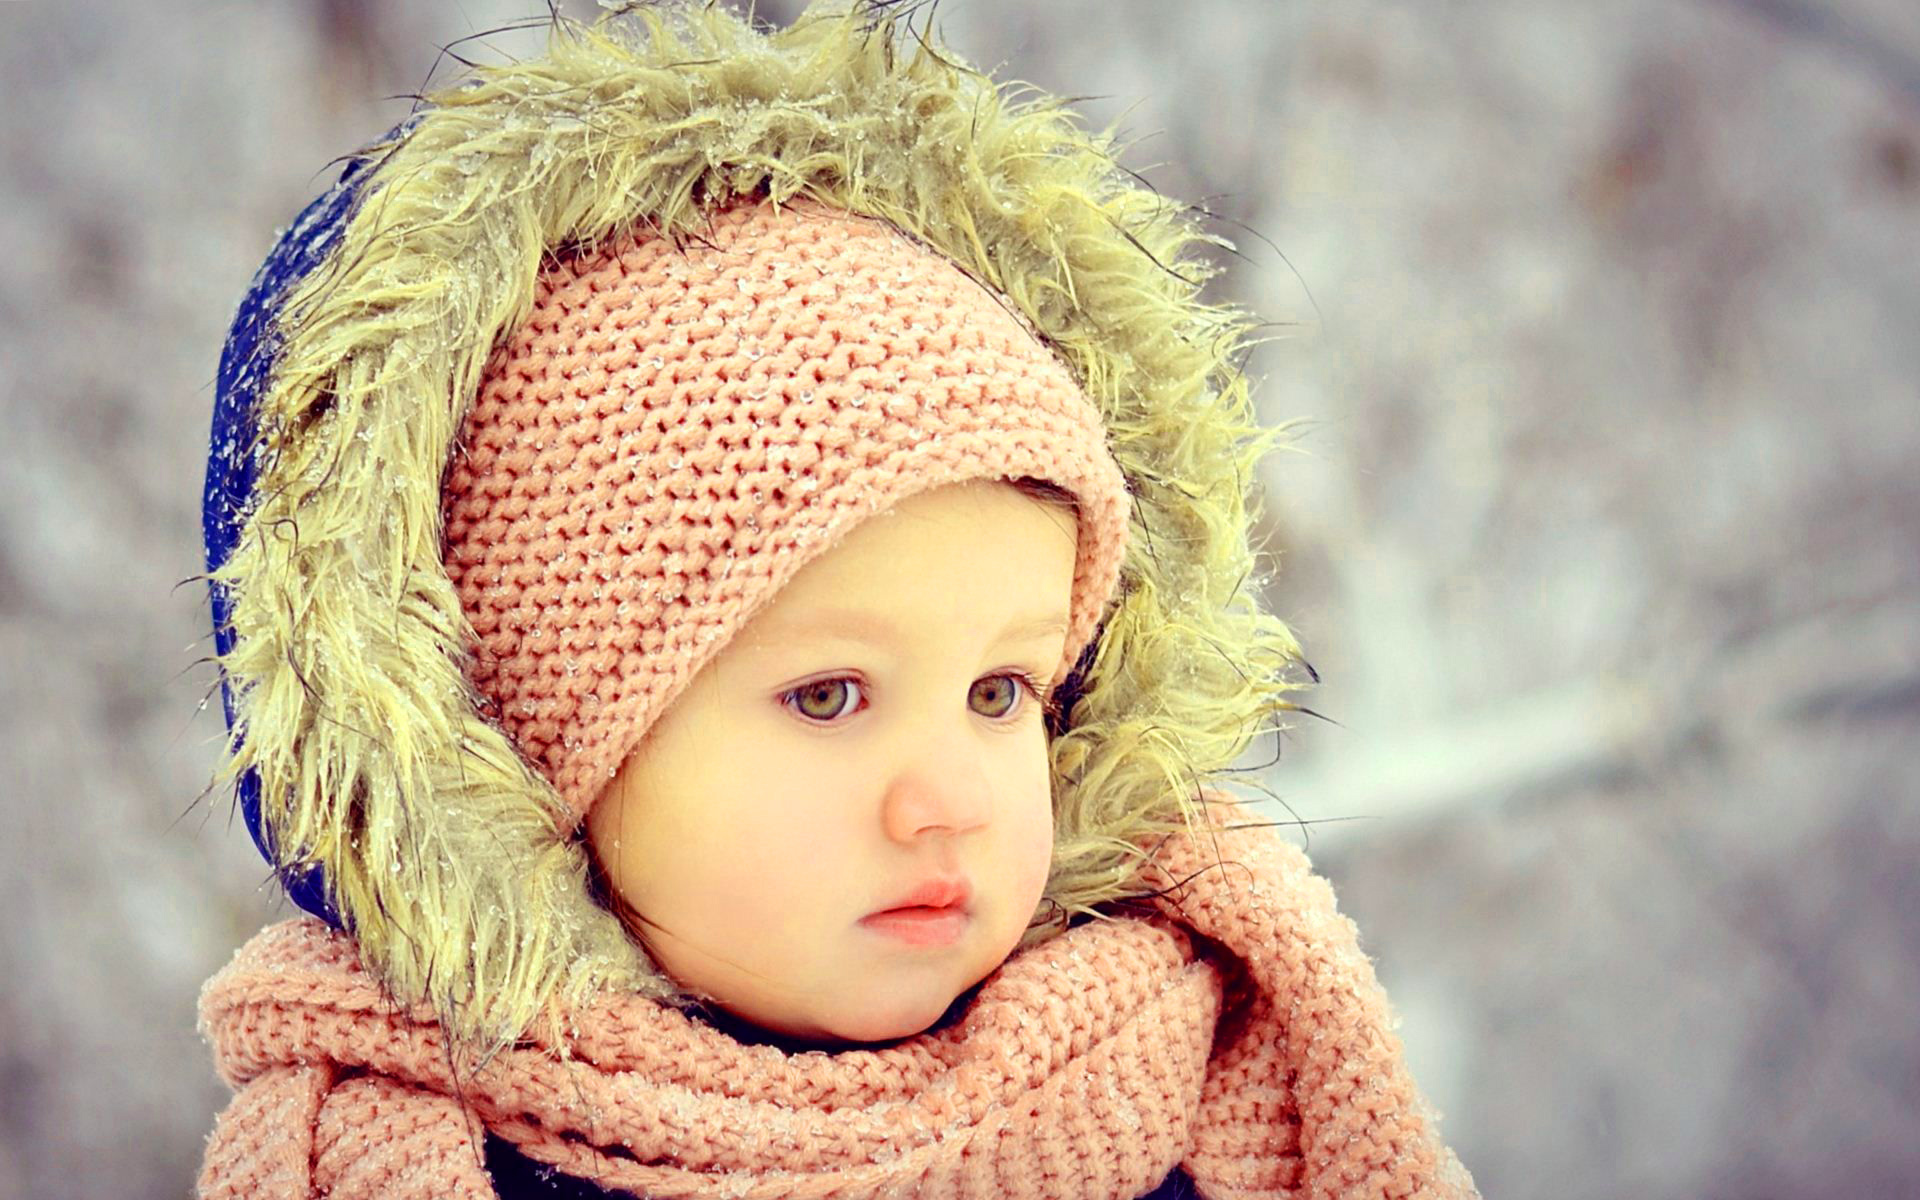 Cute Baby Boys & Girls Images Wallpaper Pictures Download